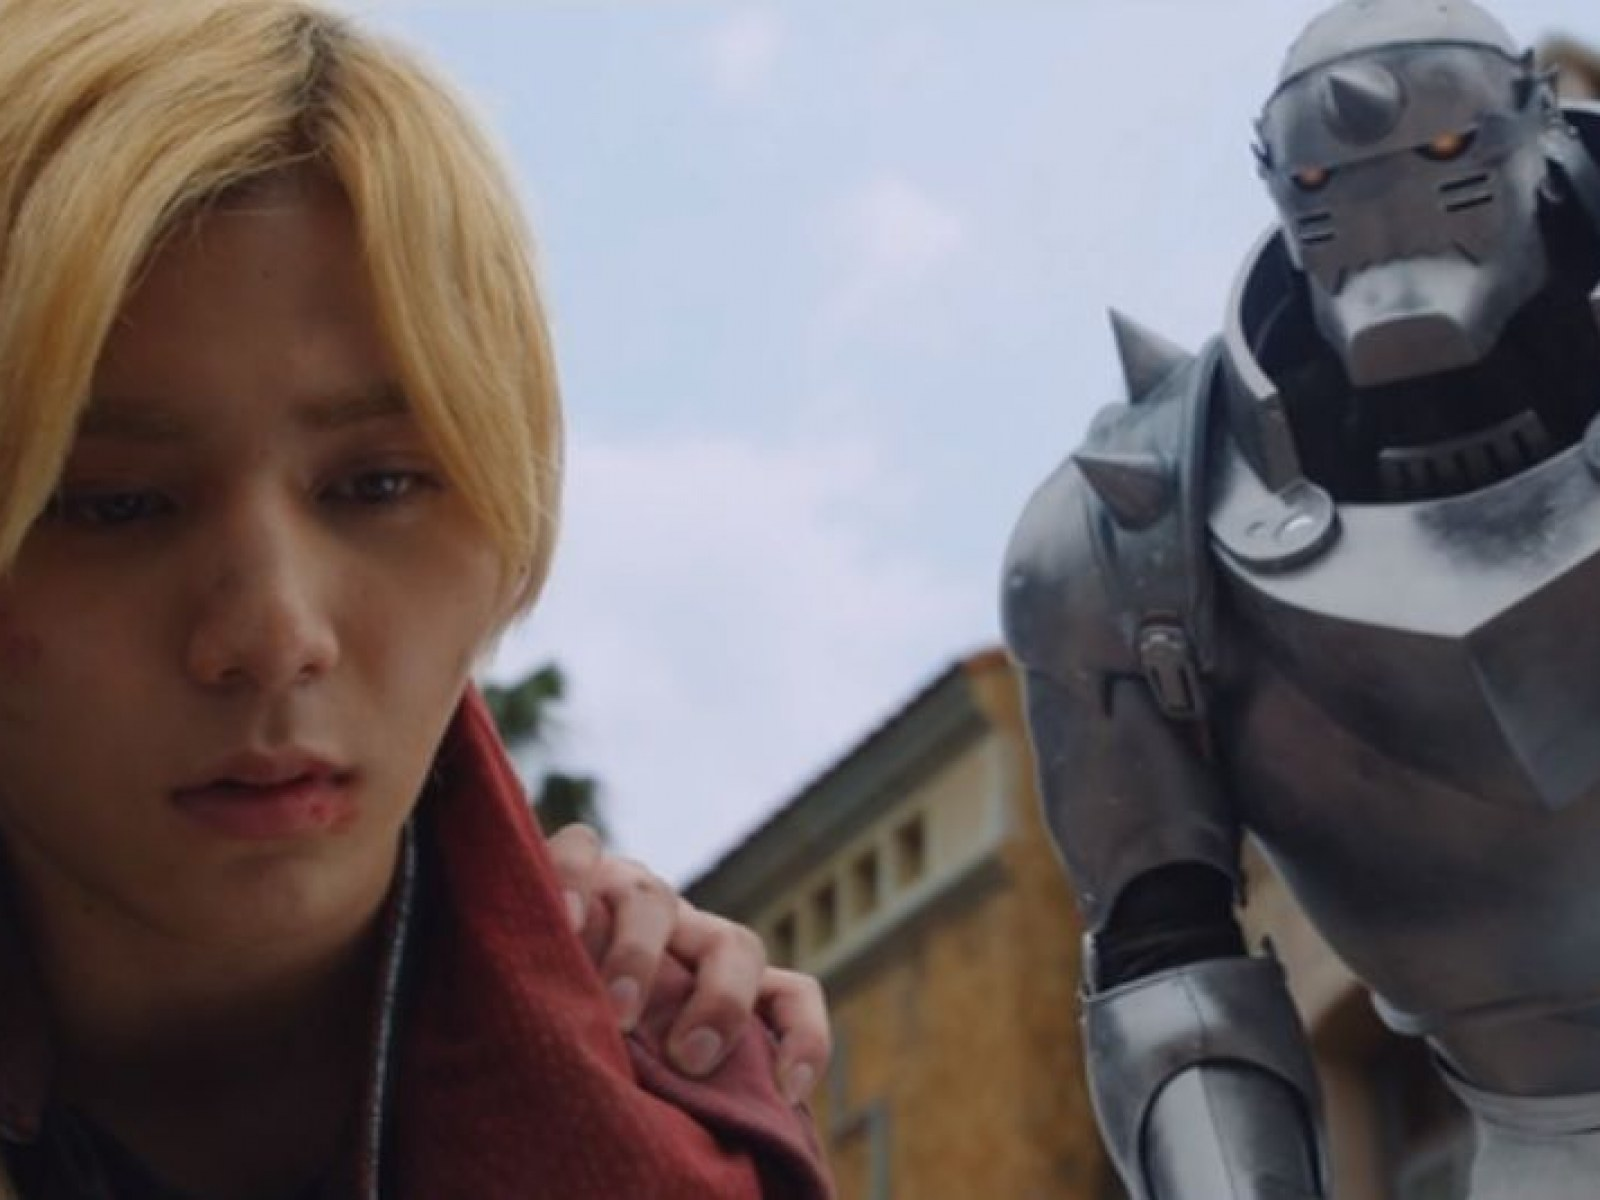 All For Lust 2003 netflix's 'fullmetal alchemist' live action movie: why fans